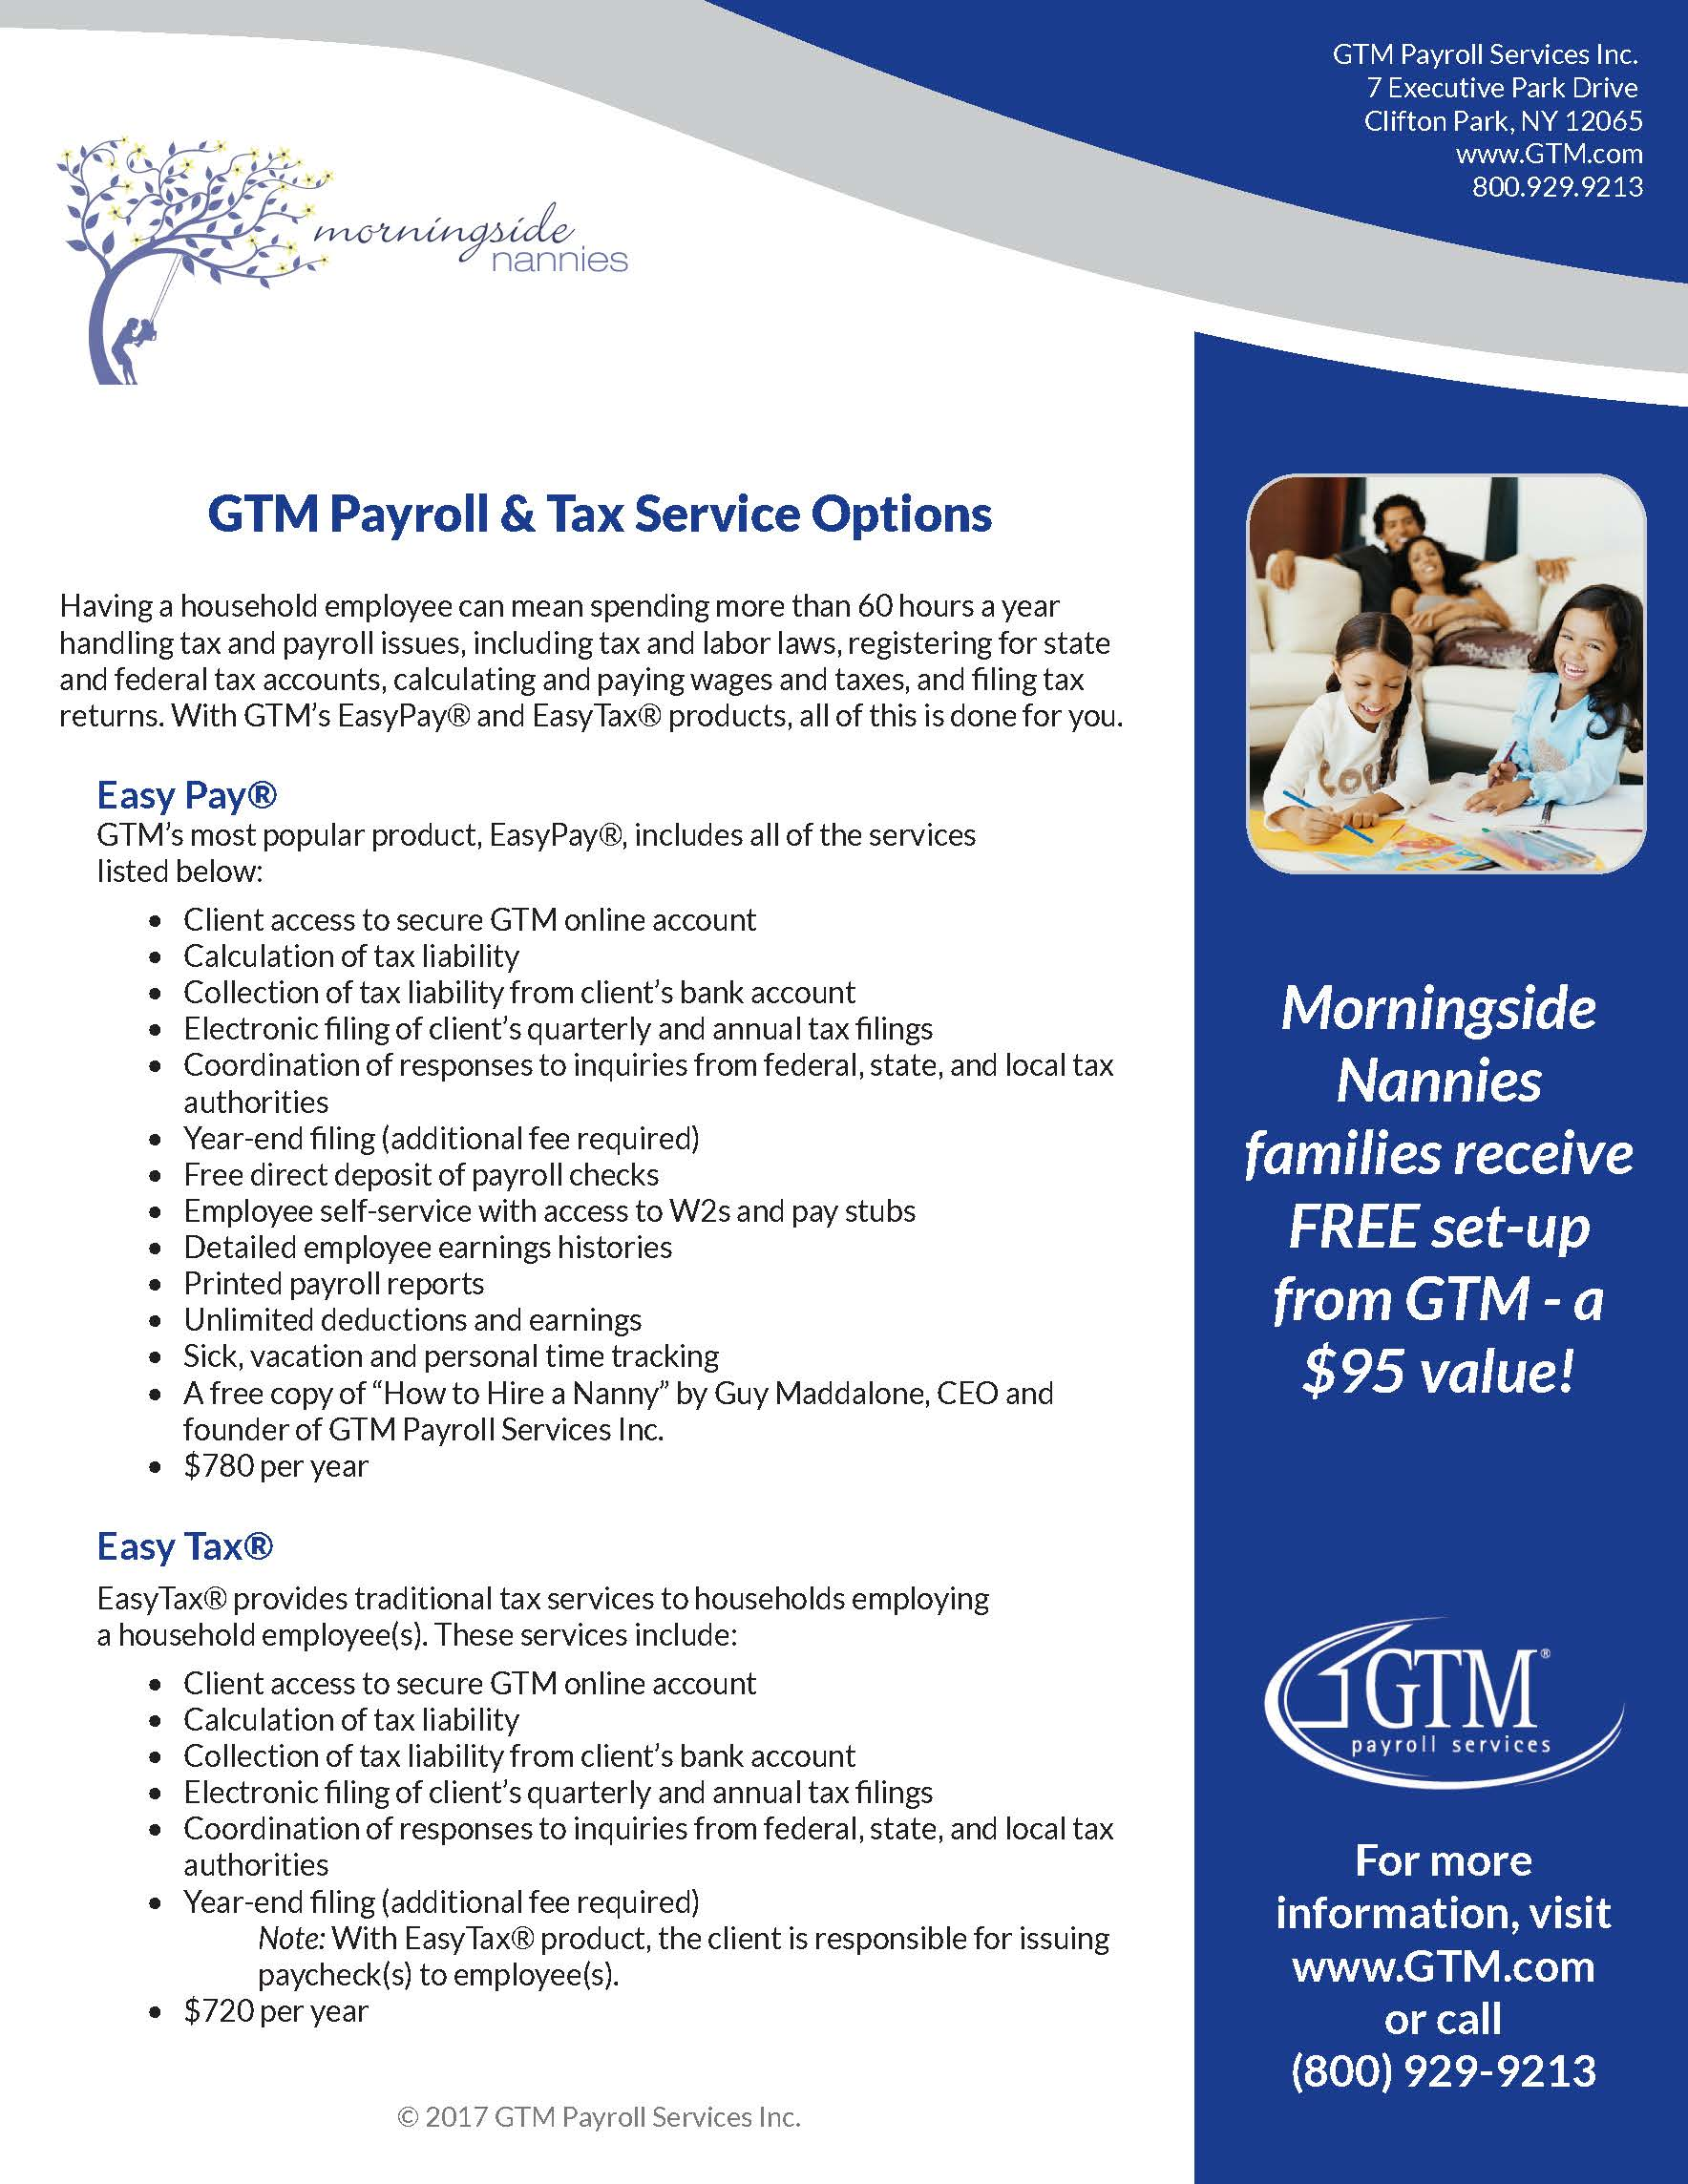 having a household employee can mean spending more than 60 hours a year handling tax and payroll issues including tax and labor laws registering for state